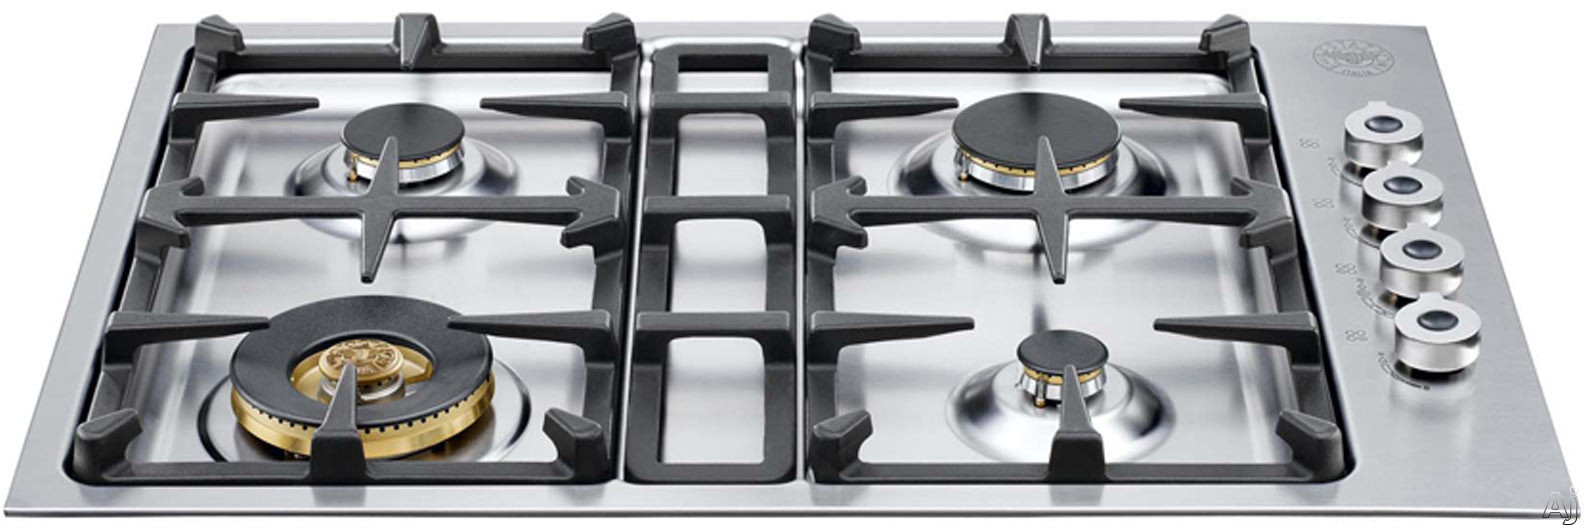 Bertazzoni Qb30400x 30 Inch Gas Cooktop With 4 Sealed